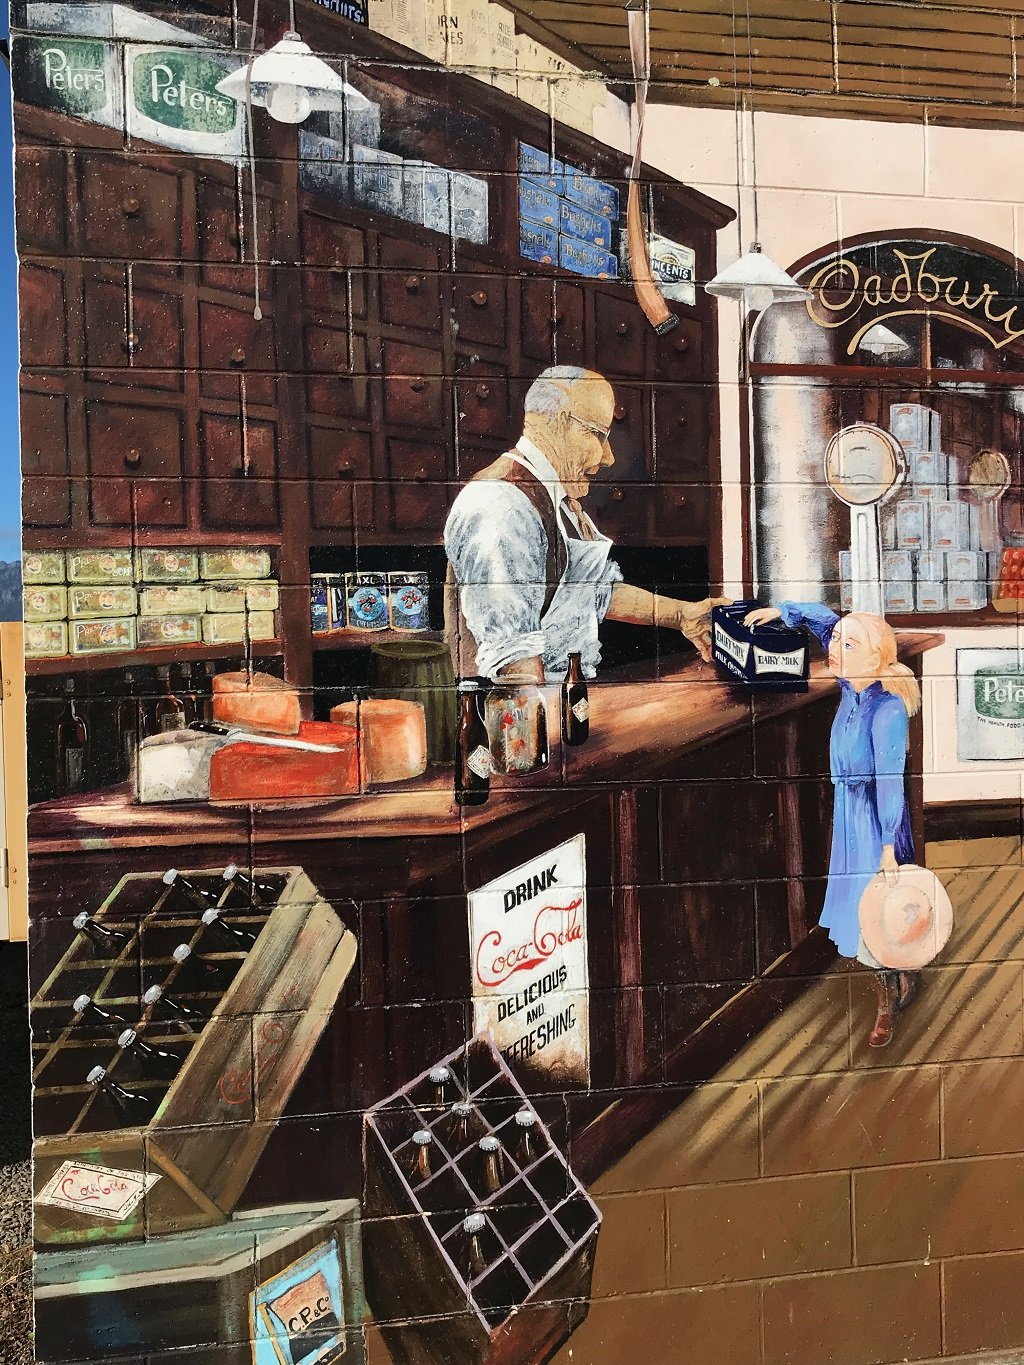 The mural of a shopkeeper serving a girl with two of the world's most famous brands on show. Painted straight on brickwork gave this one a tiled appearance.